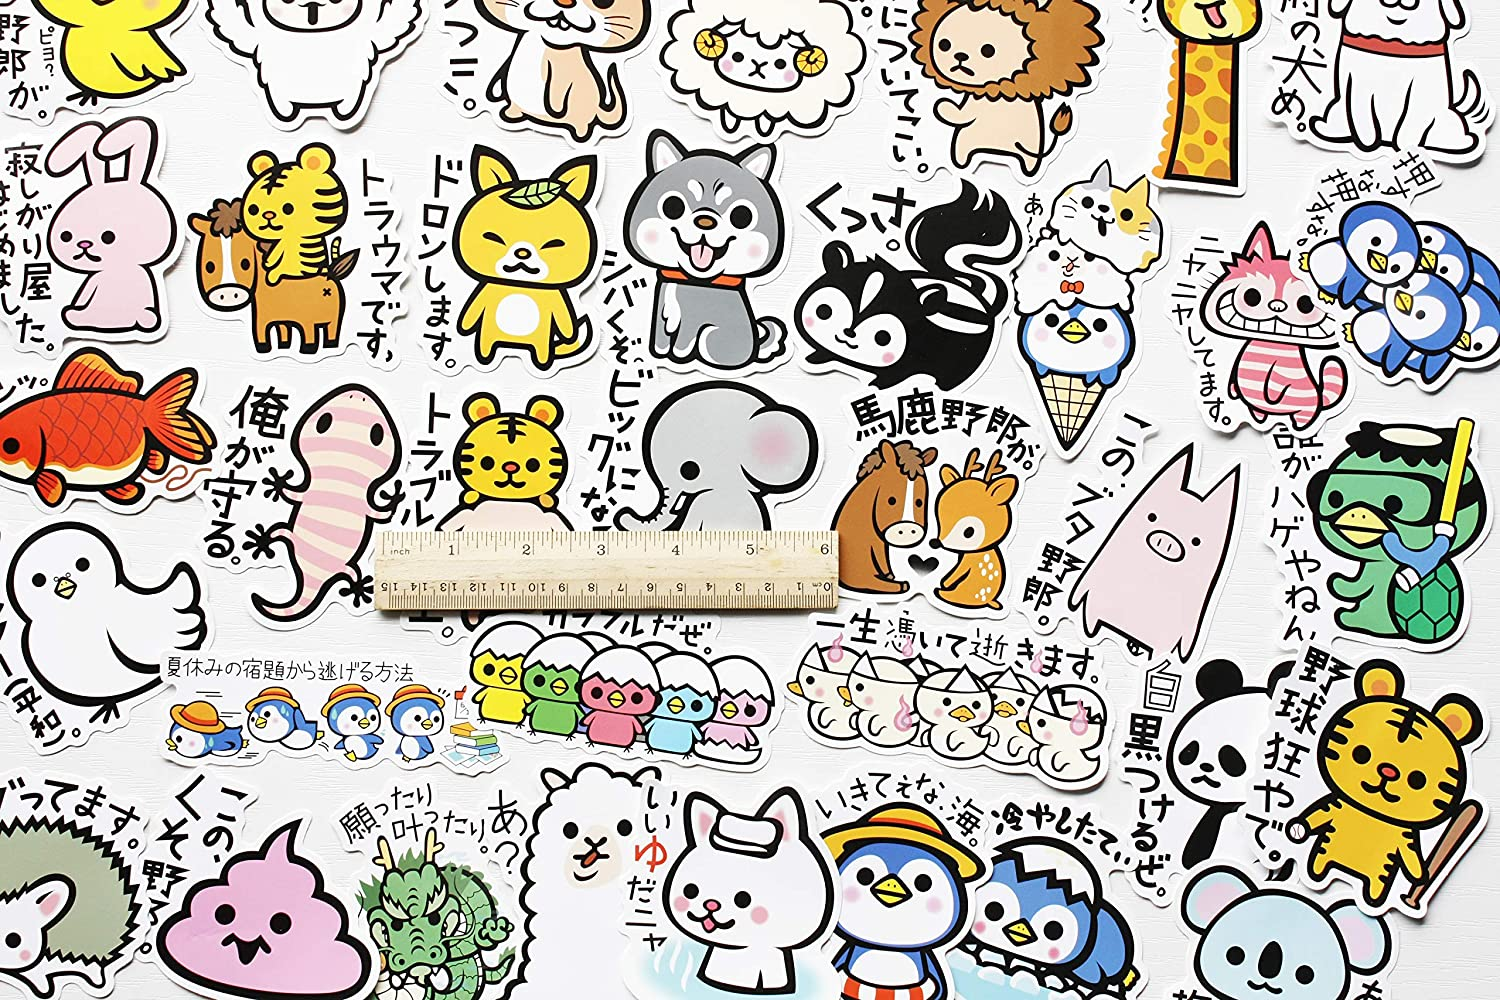 50Pcs Funny Stickers Boxer Stickers Dog Decals Cute Animal for Kids Stickers for Hard Hats Animal Crossing Sticker School Stickers